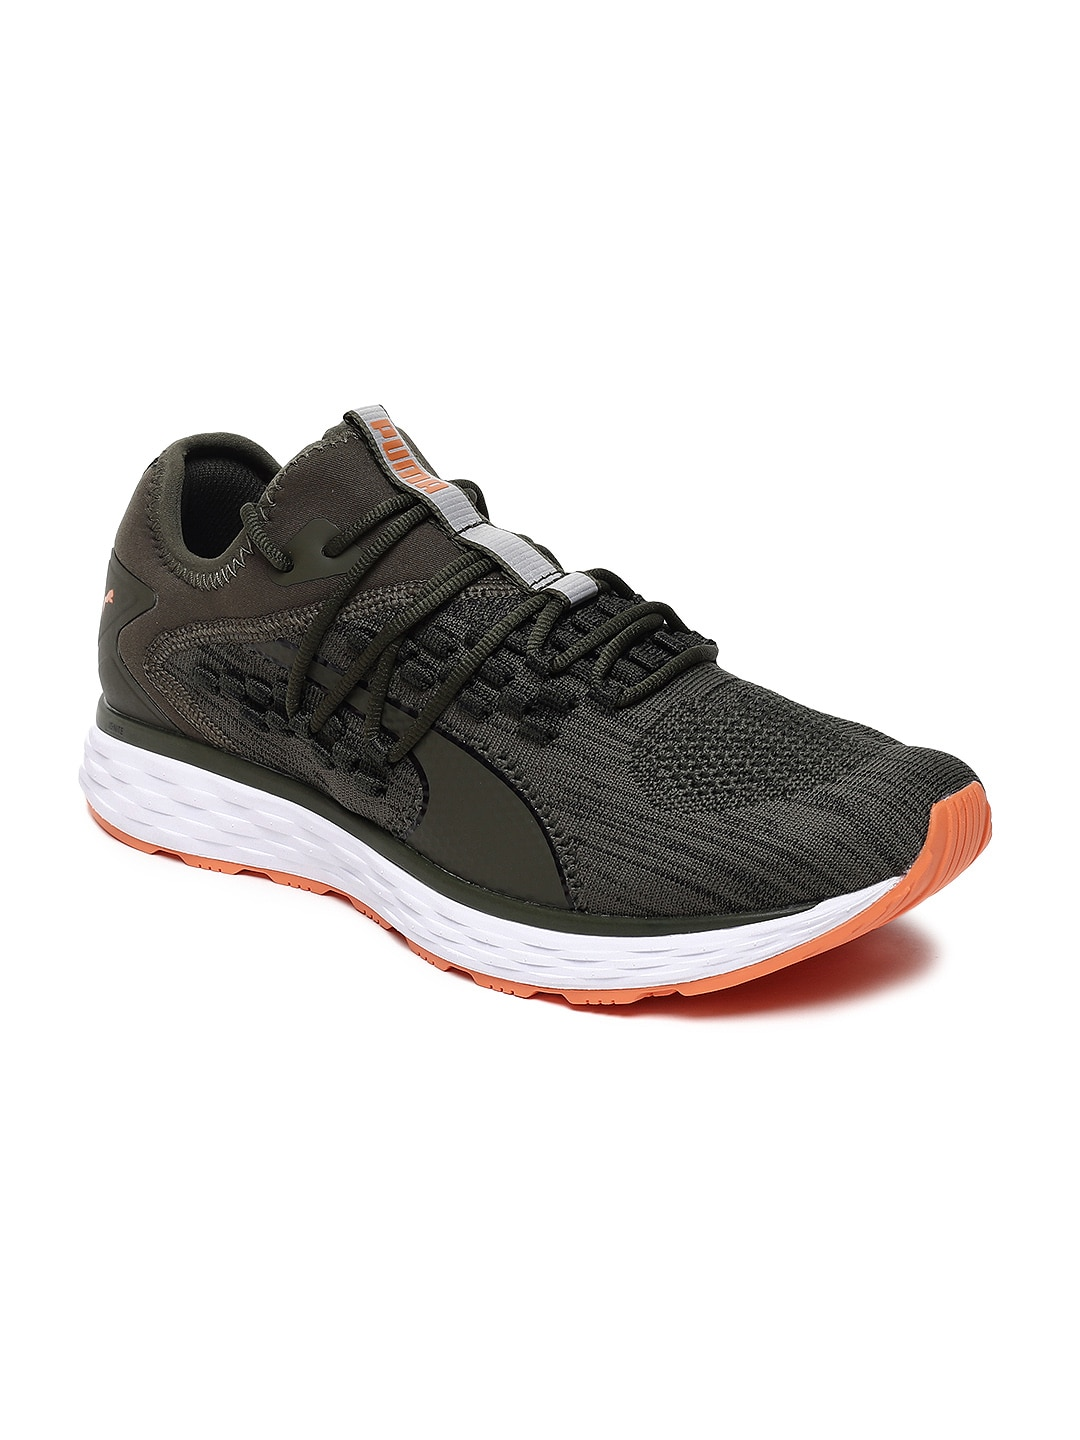 2c03f955e903 Puma Shoes - Buy Puma Shoes for Men   Women Online in India